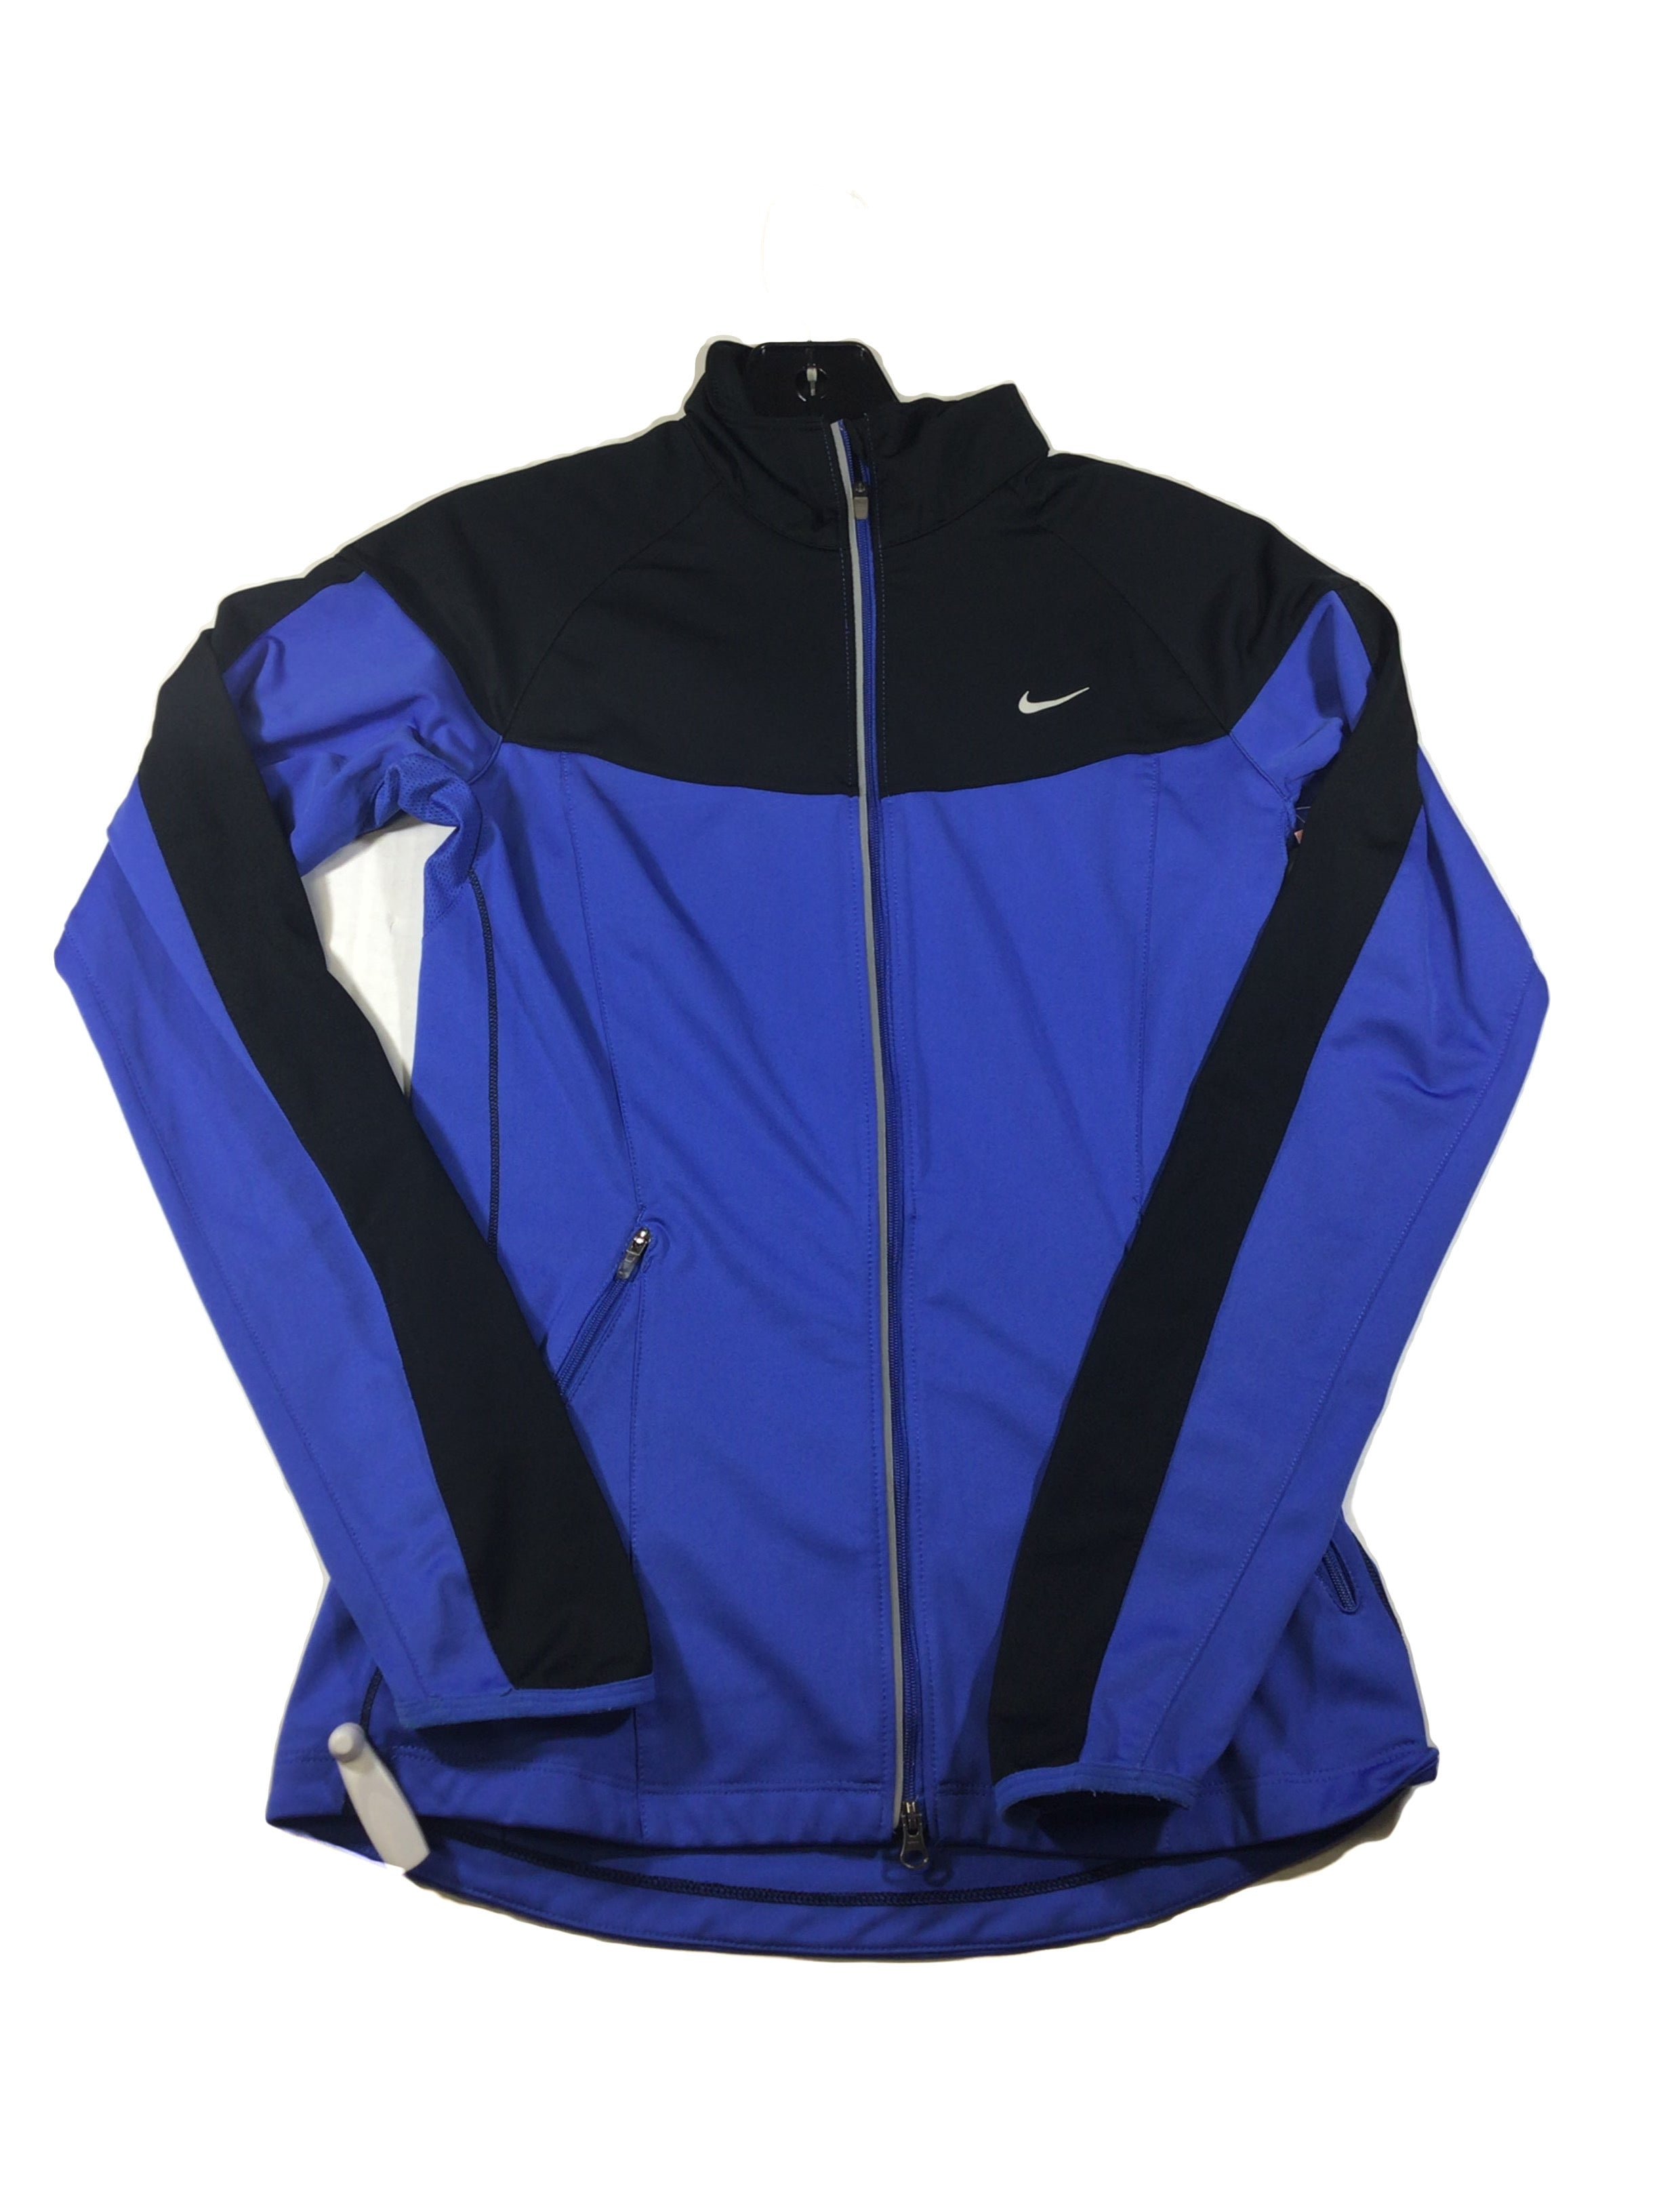 Primary Photo - BRAND: NIKE <BR>STYLE: ATHLETIC JACKET <BR>COLOR: ROYAL BLUE <BR>SIZE: XS <BR>SKU: 213-213143-3157